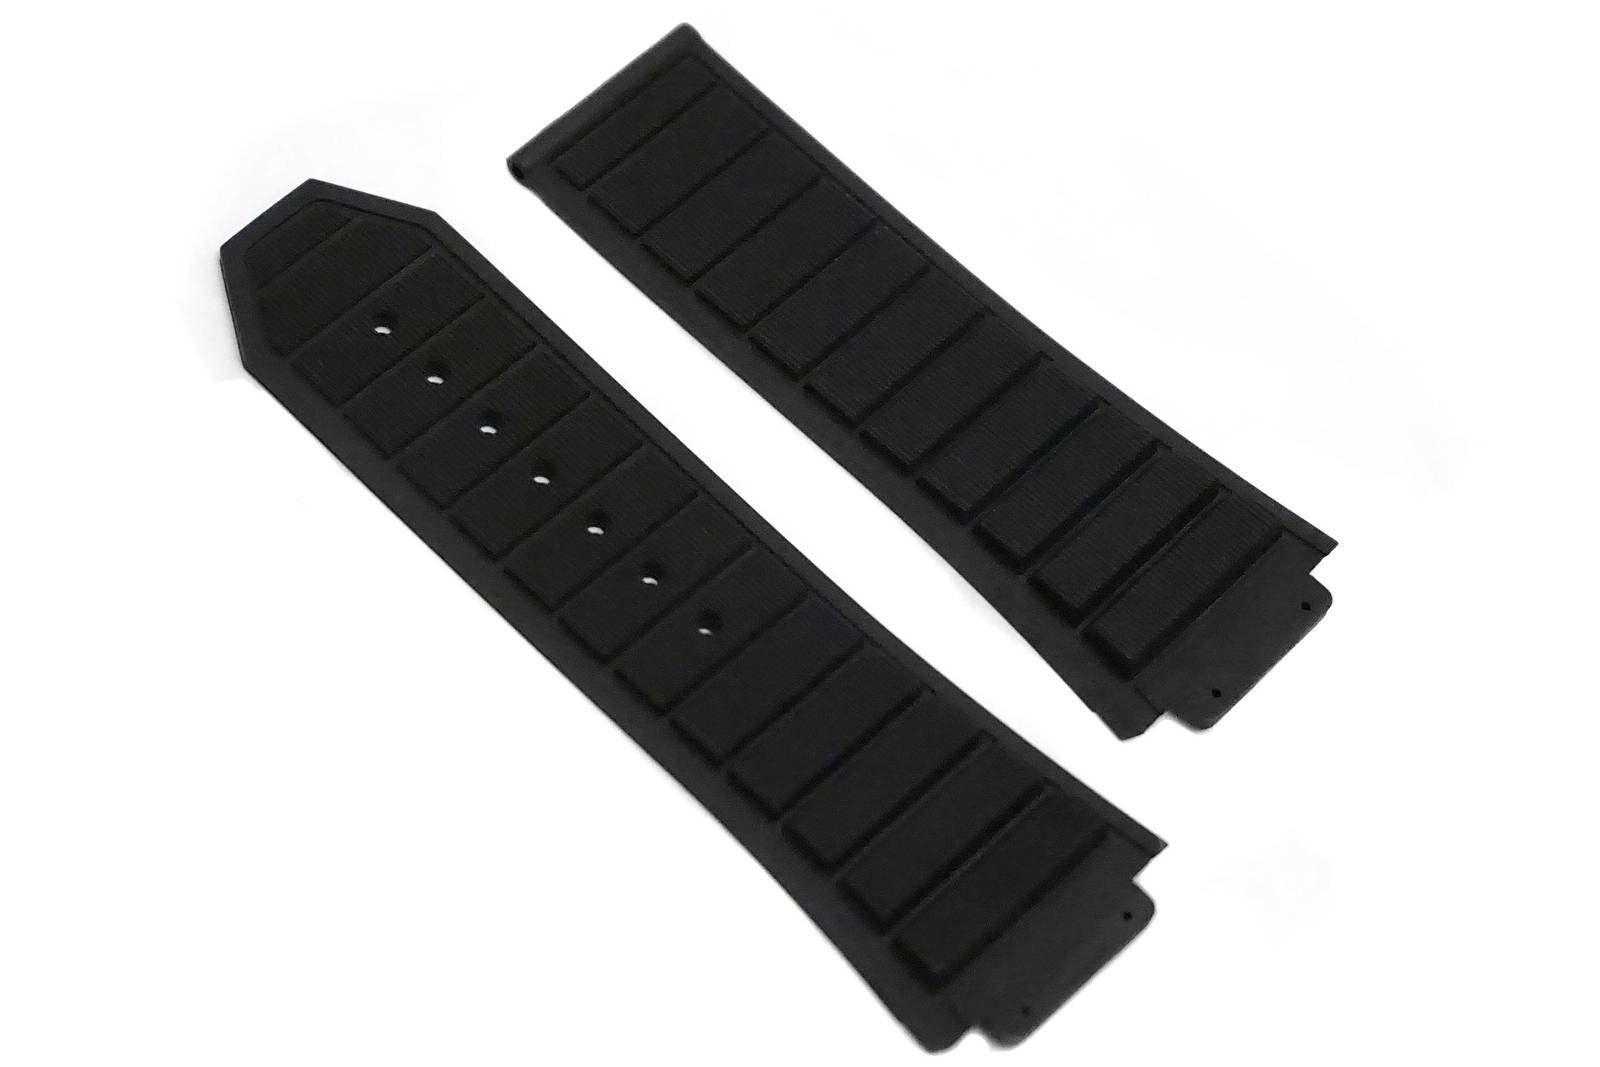 24mm Rubber Strap Band Deployment For H Hublot 44-45mm King Power Black